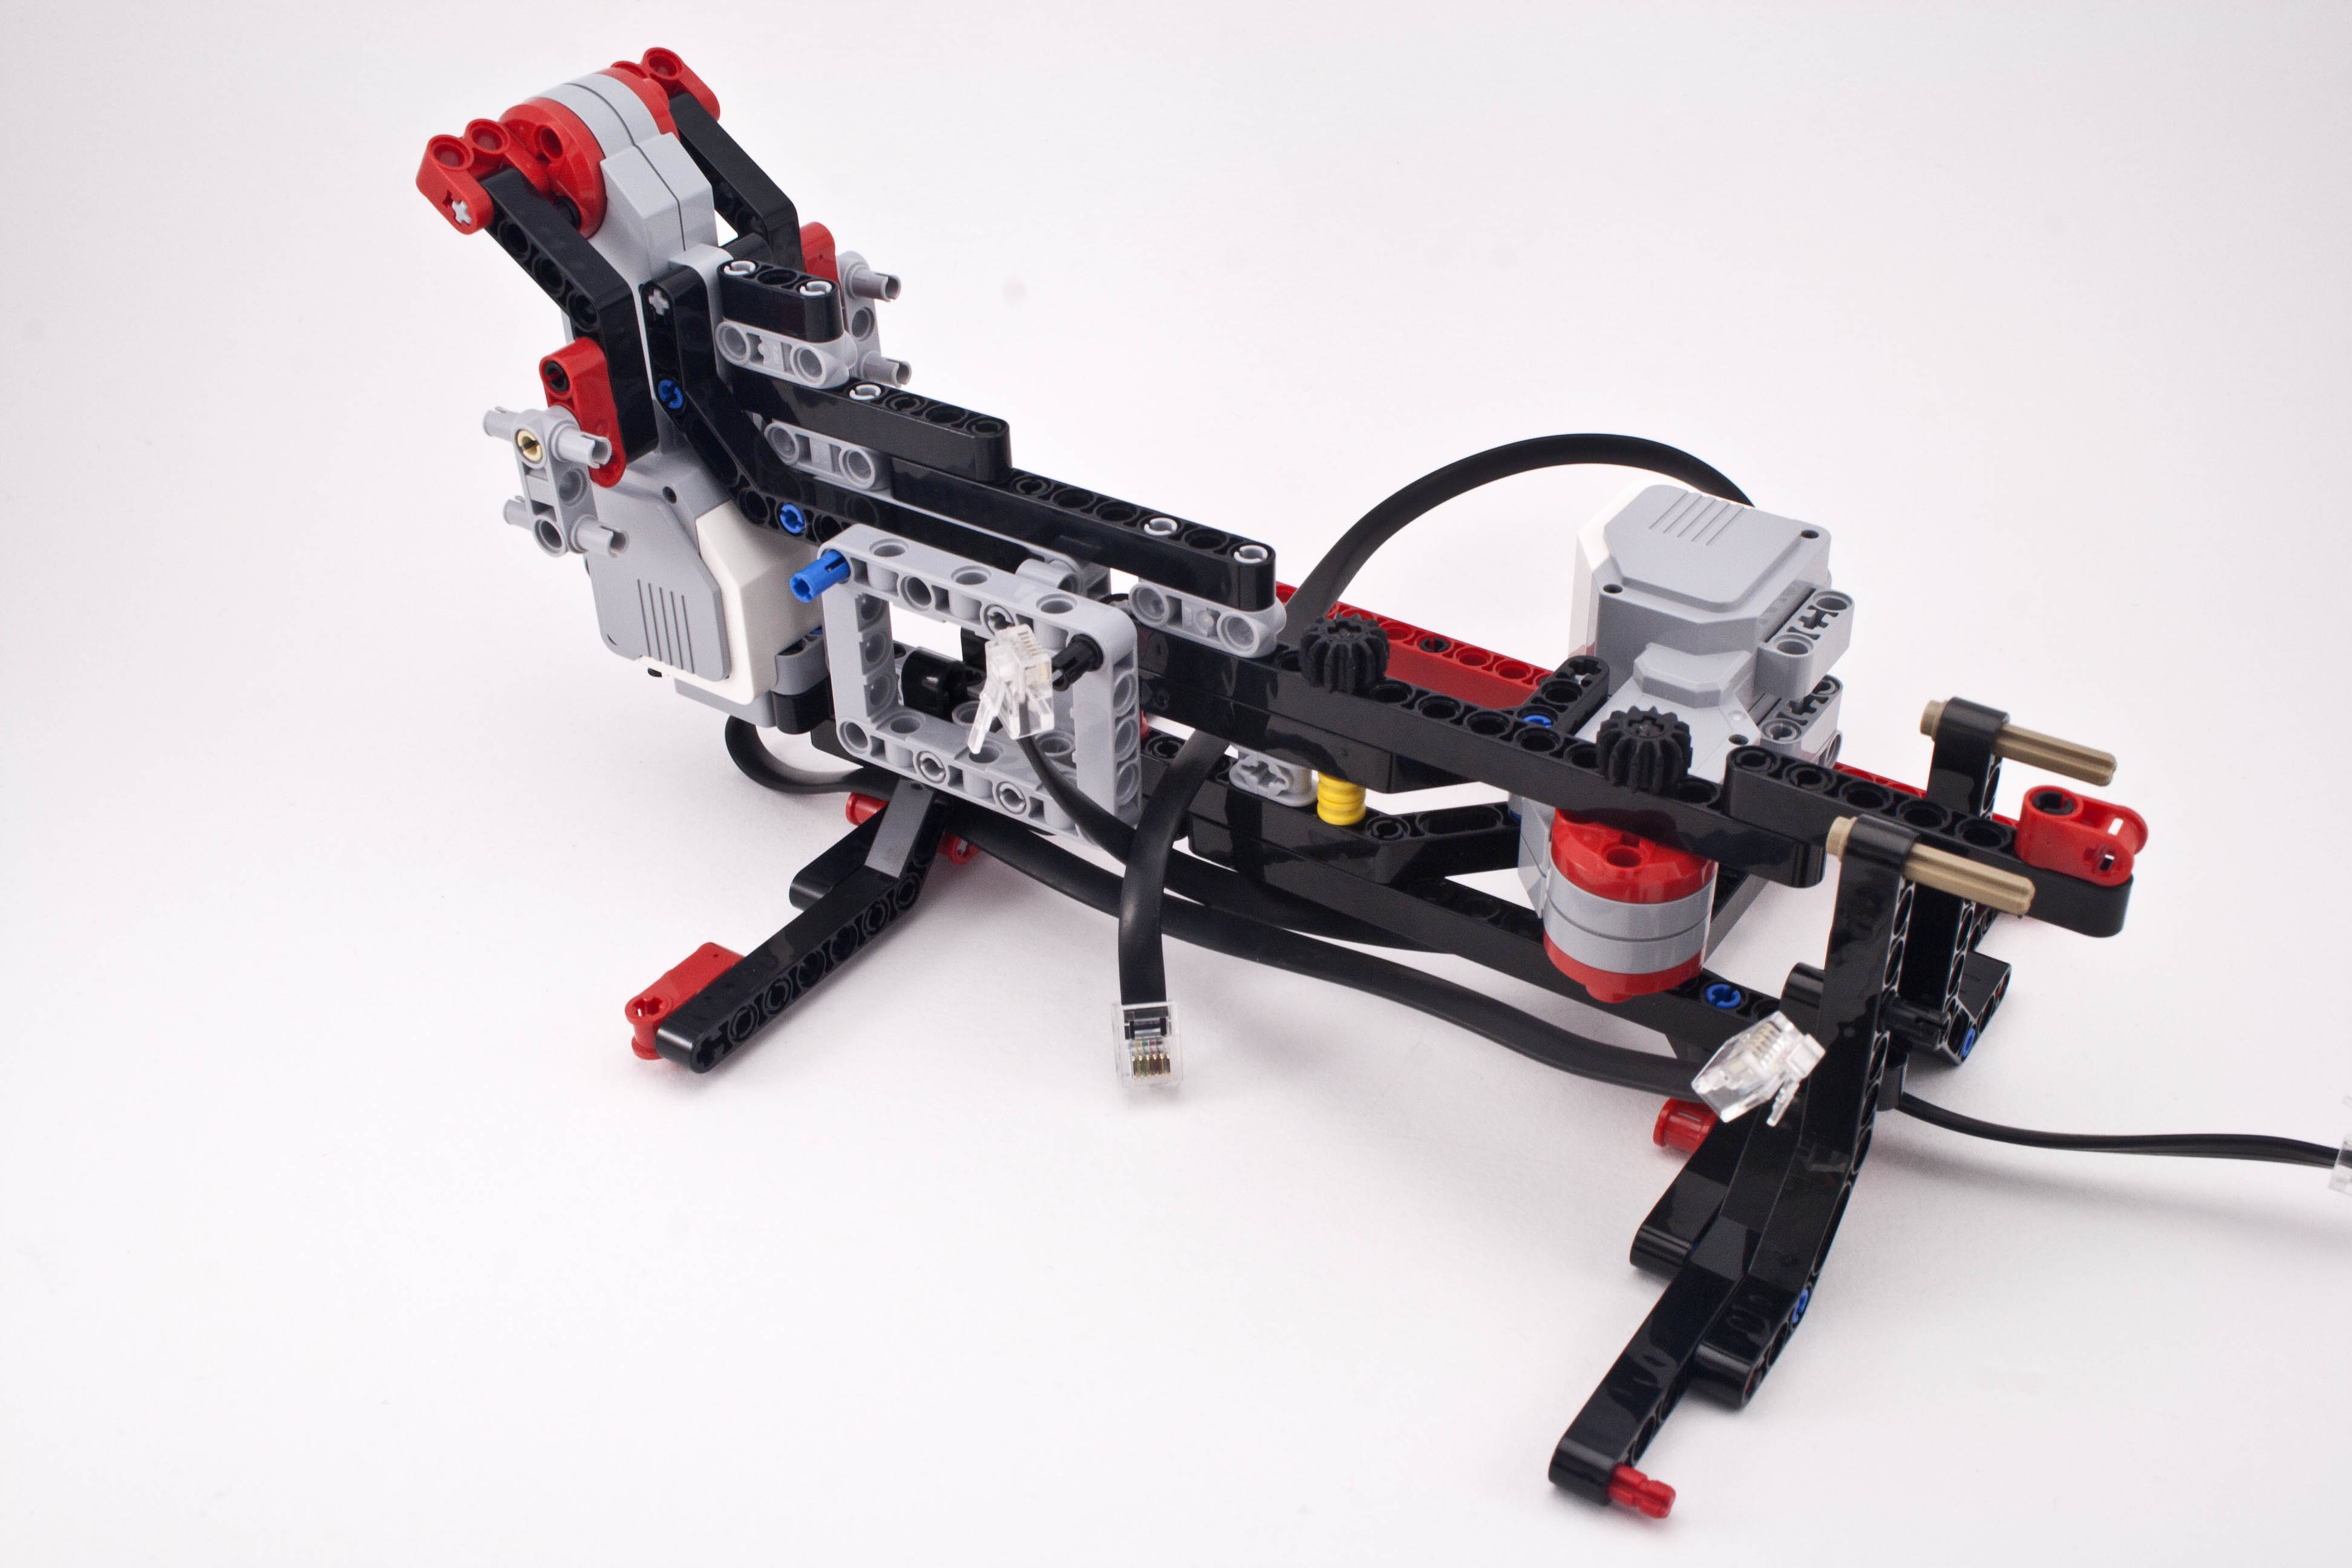 Lego Mindstorms Education Building Instructions